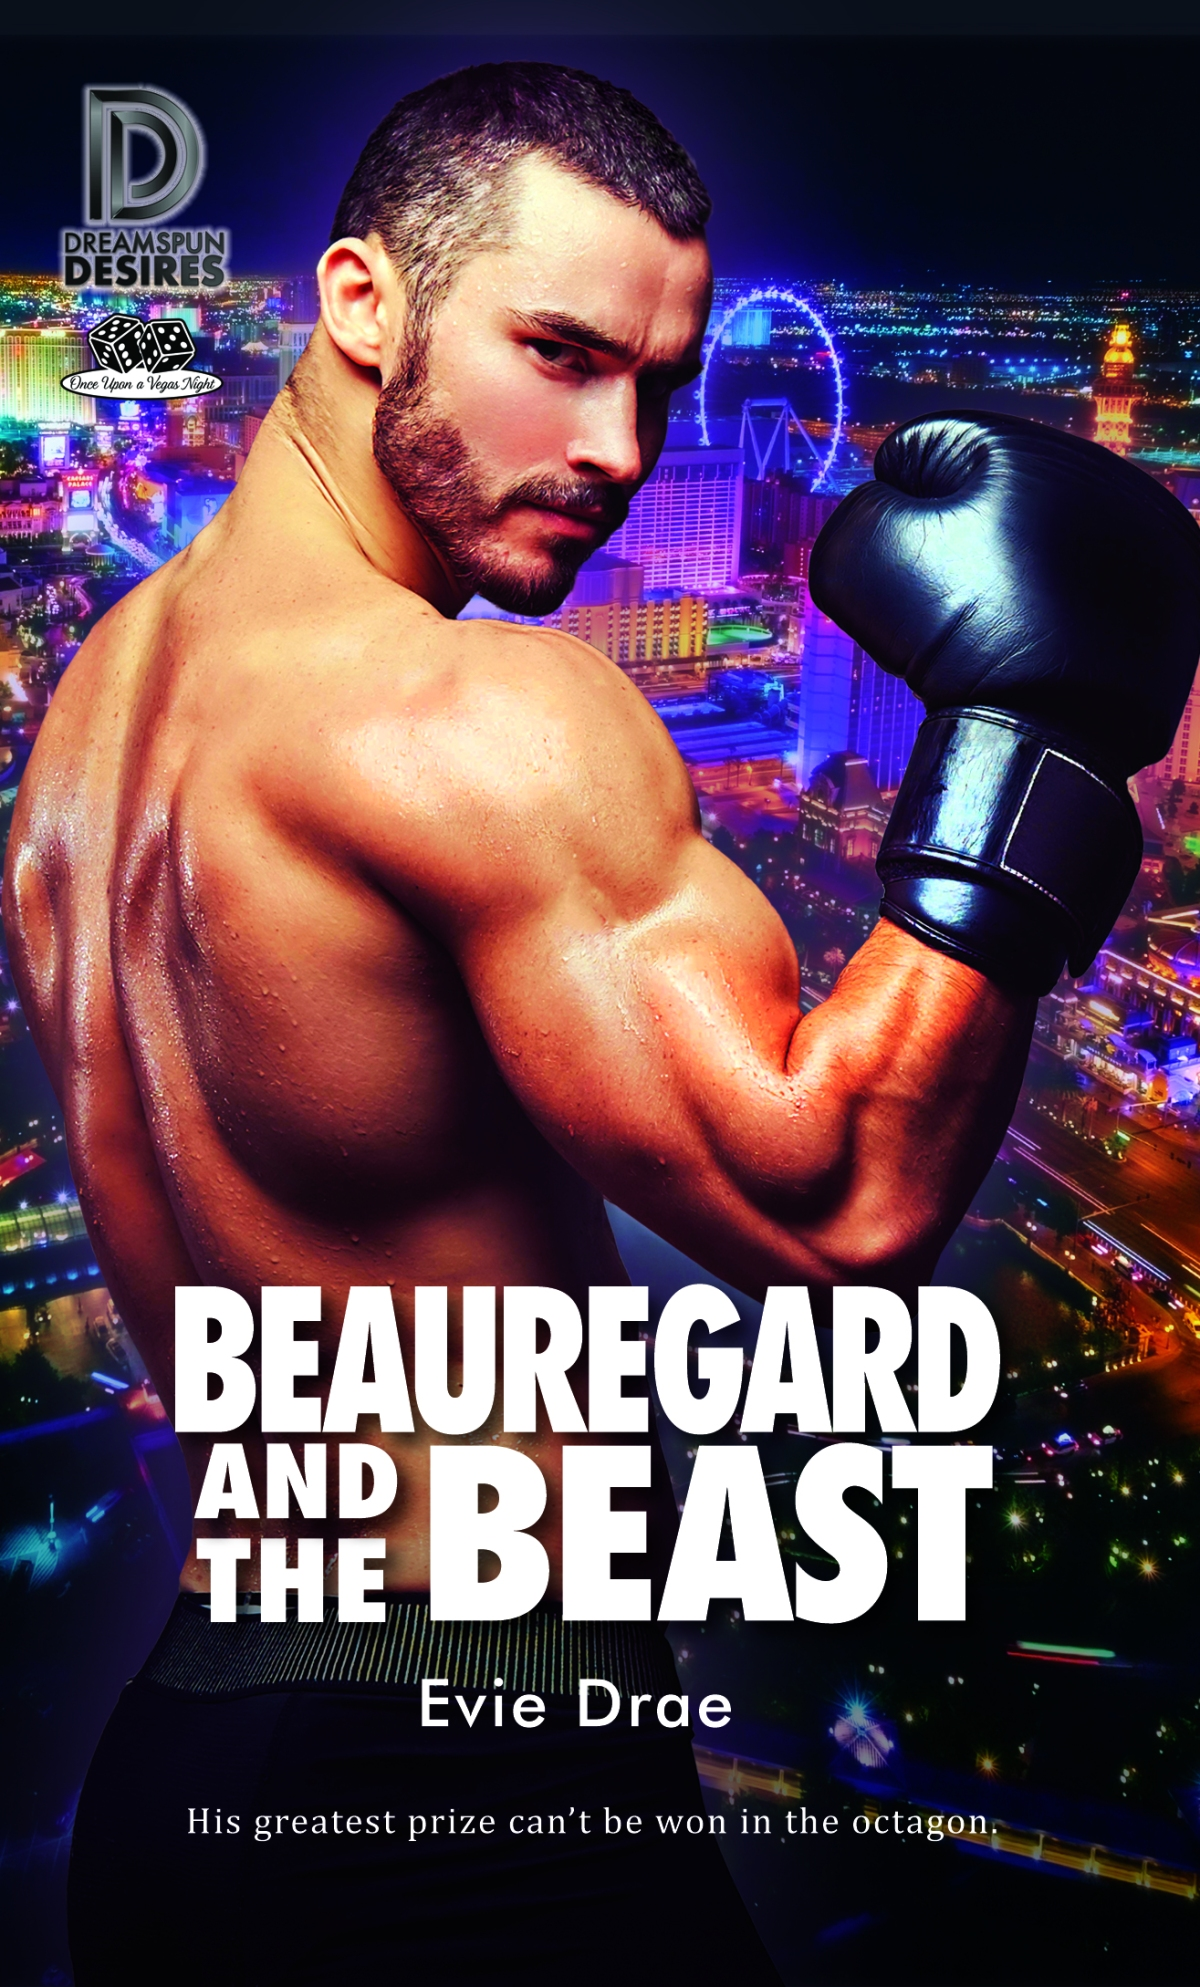 Beauregard and the Beast, by Evie Drae